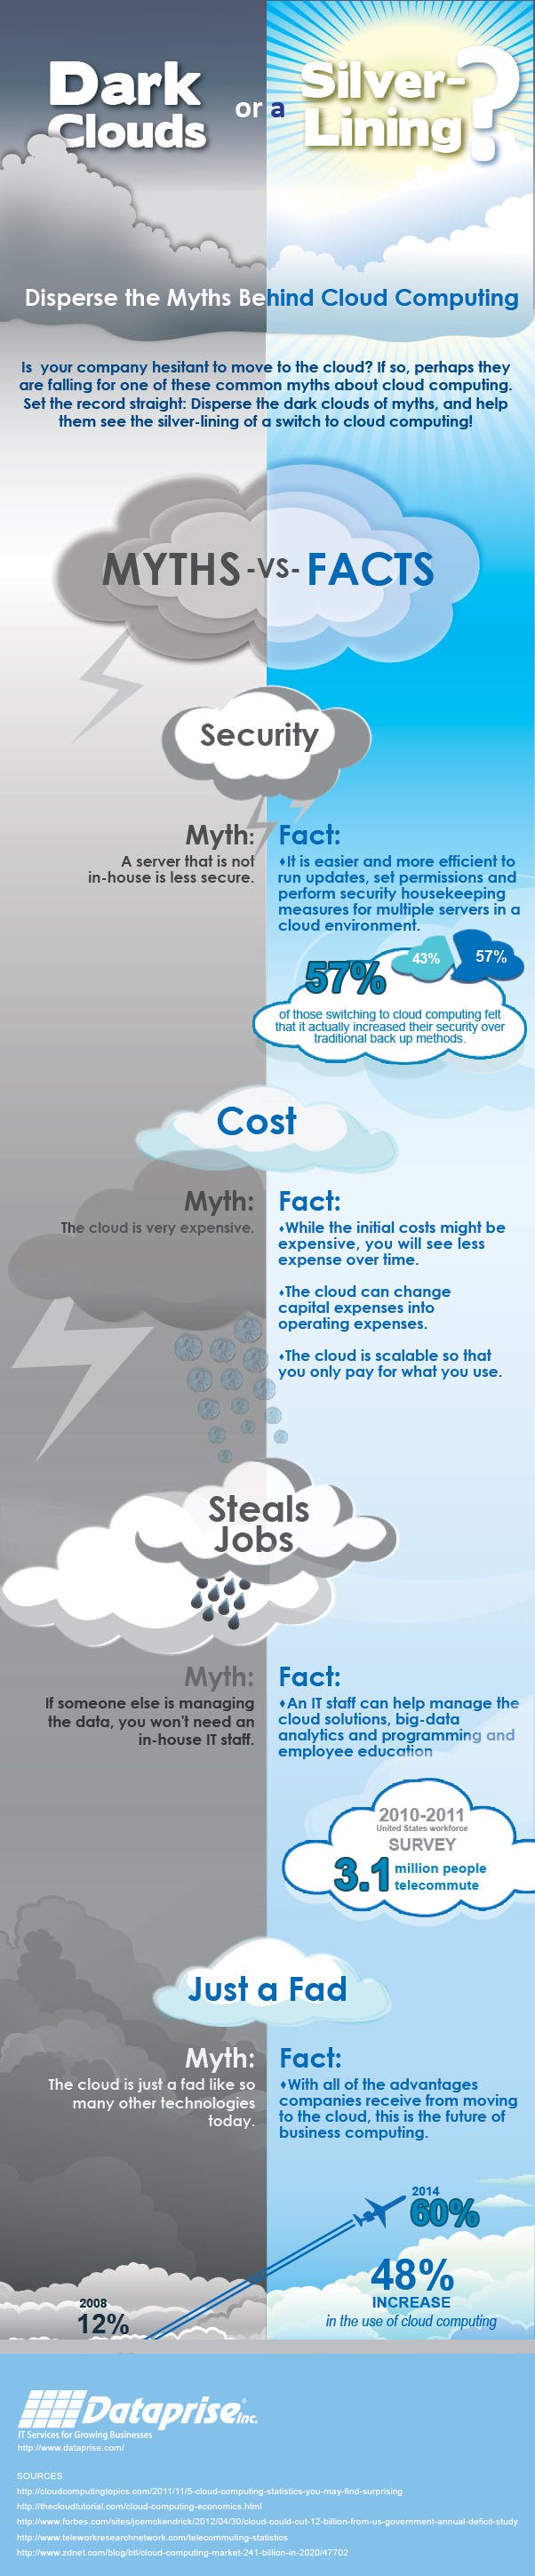 Disperse the Myths Behind Cloud Computing (Infographic)